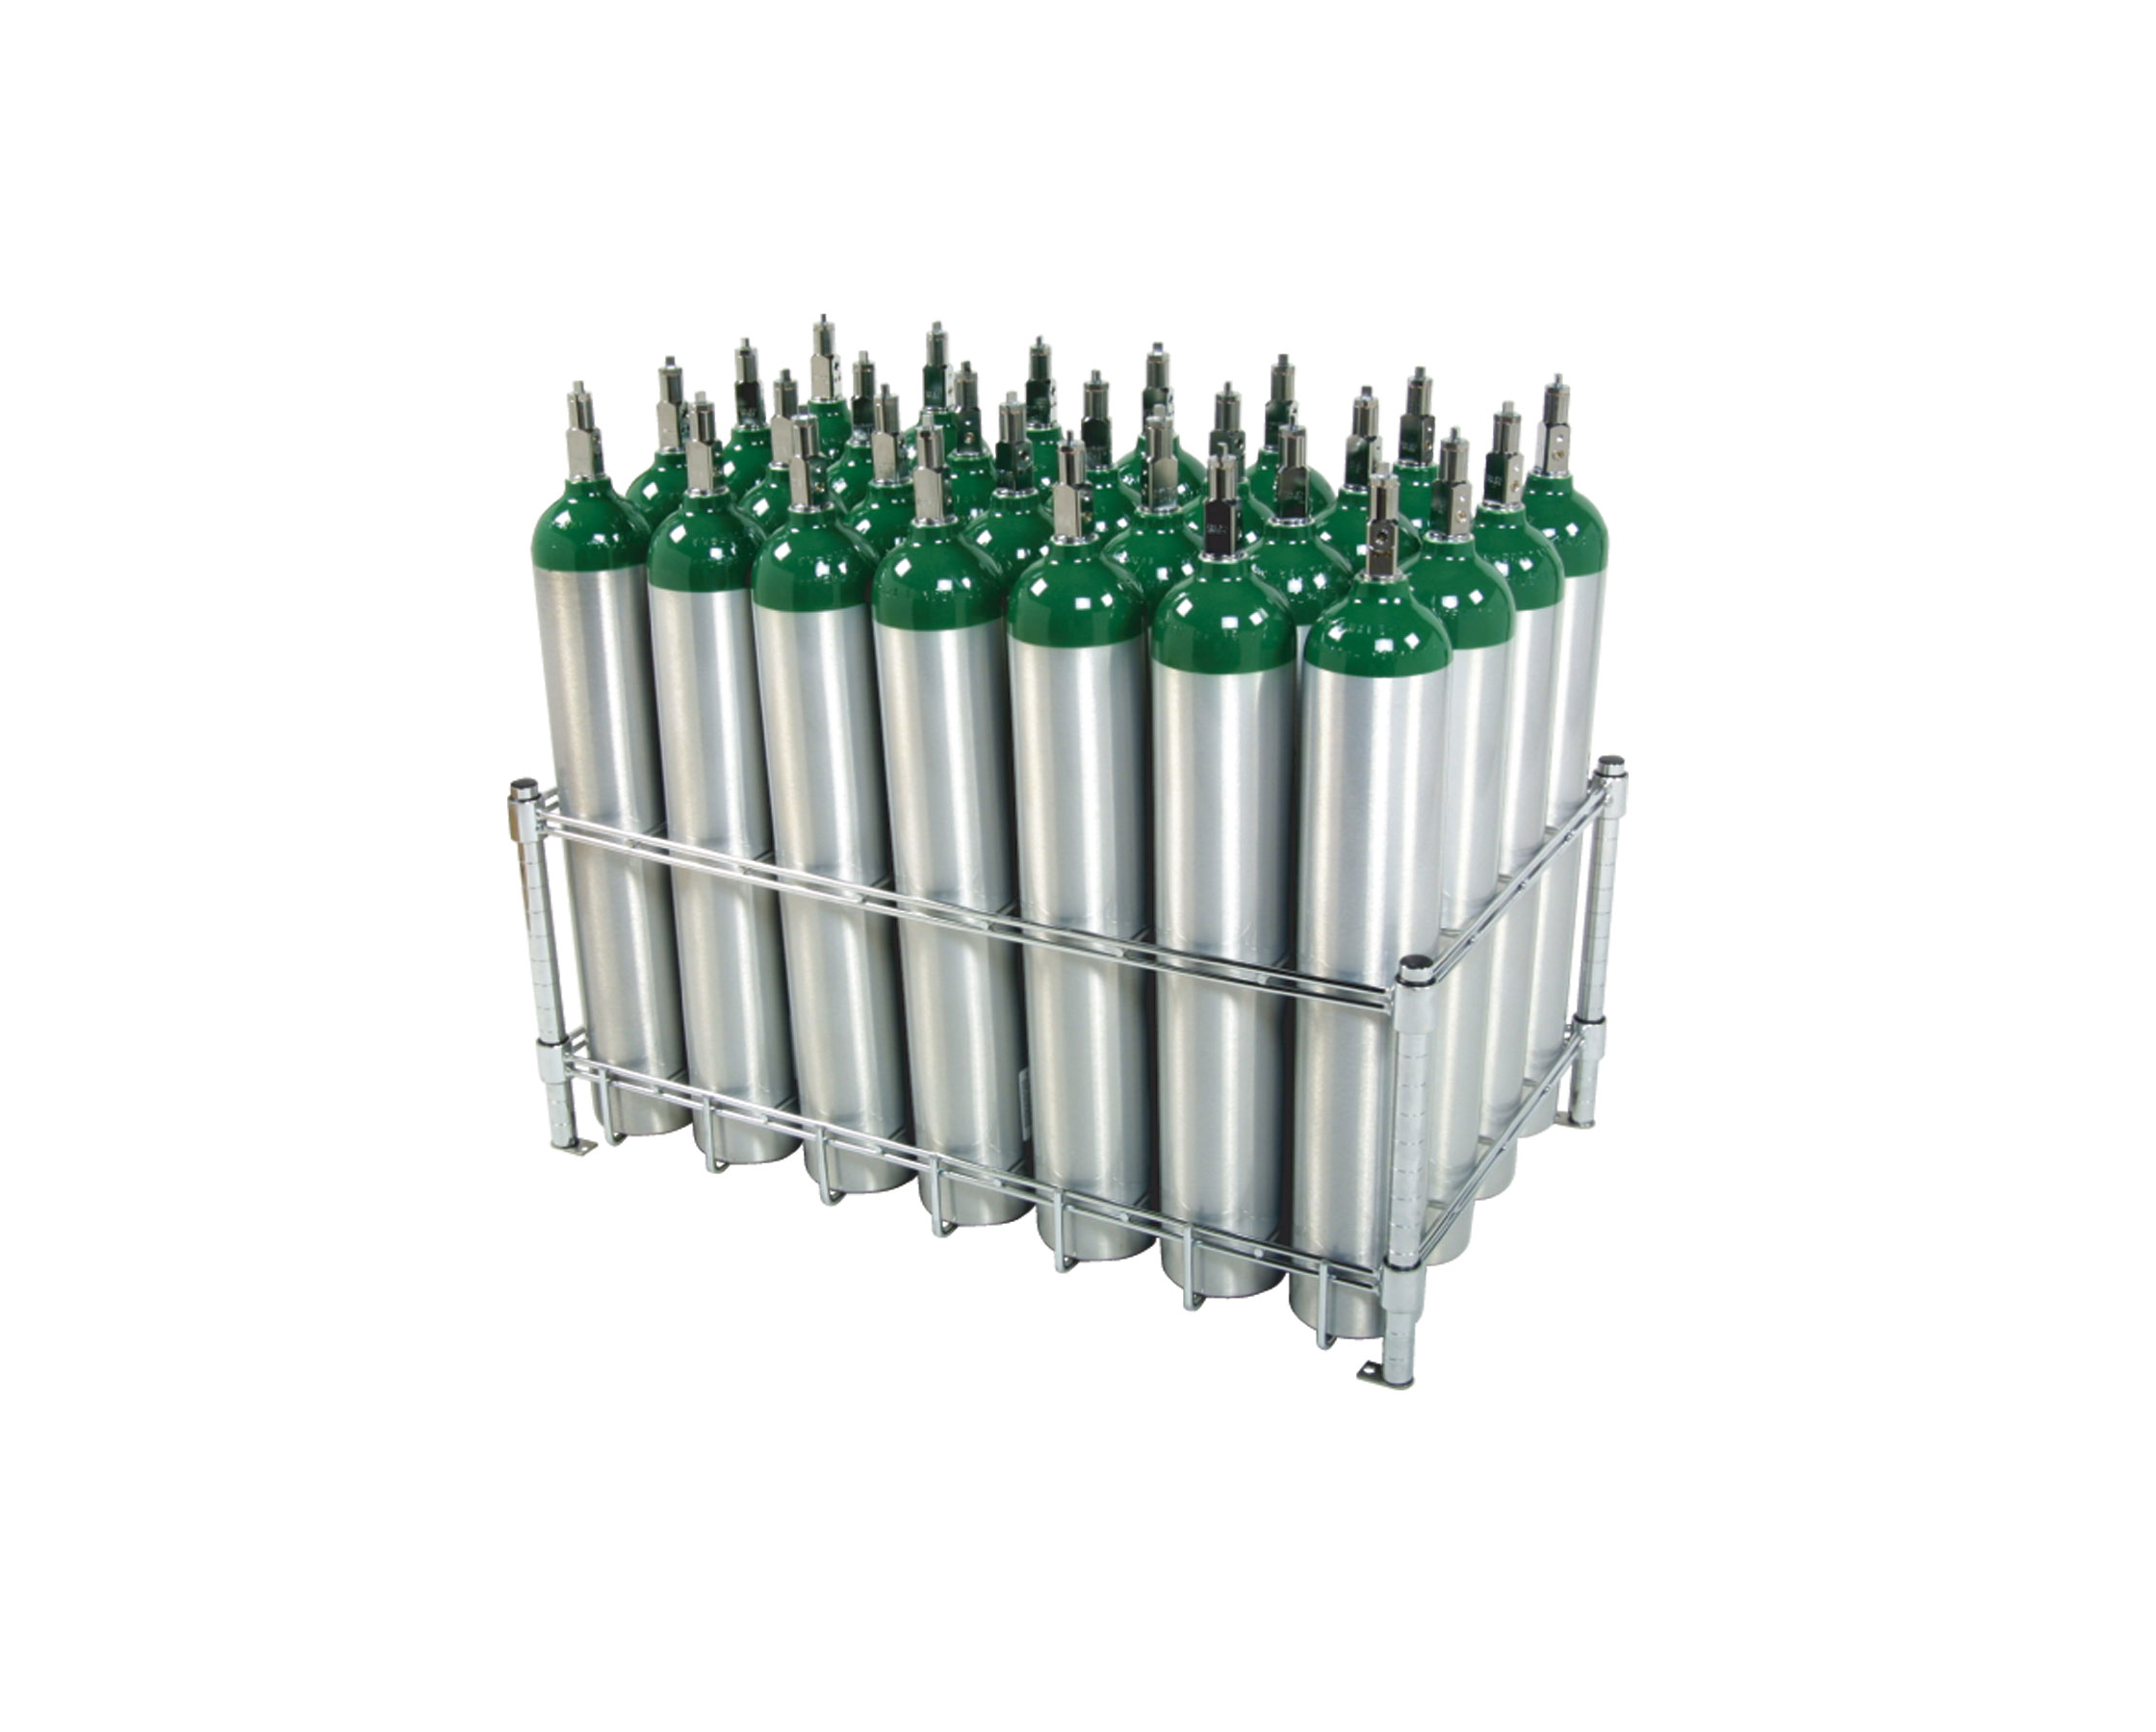 28 E Oxygen Cylinder Rack From Wt Farley